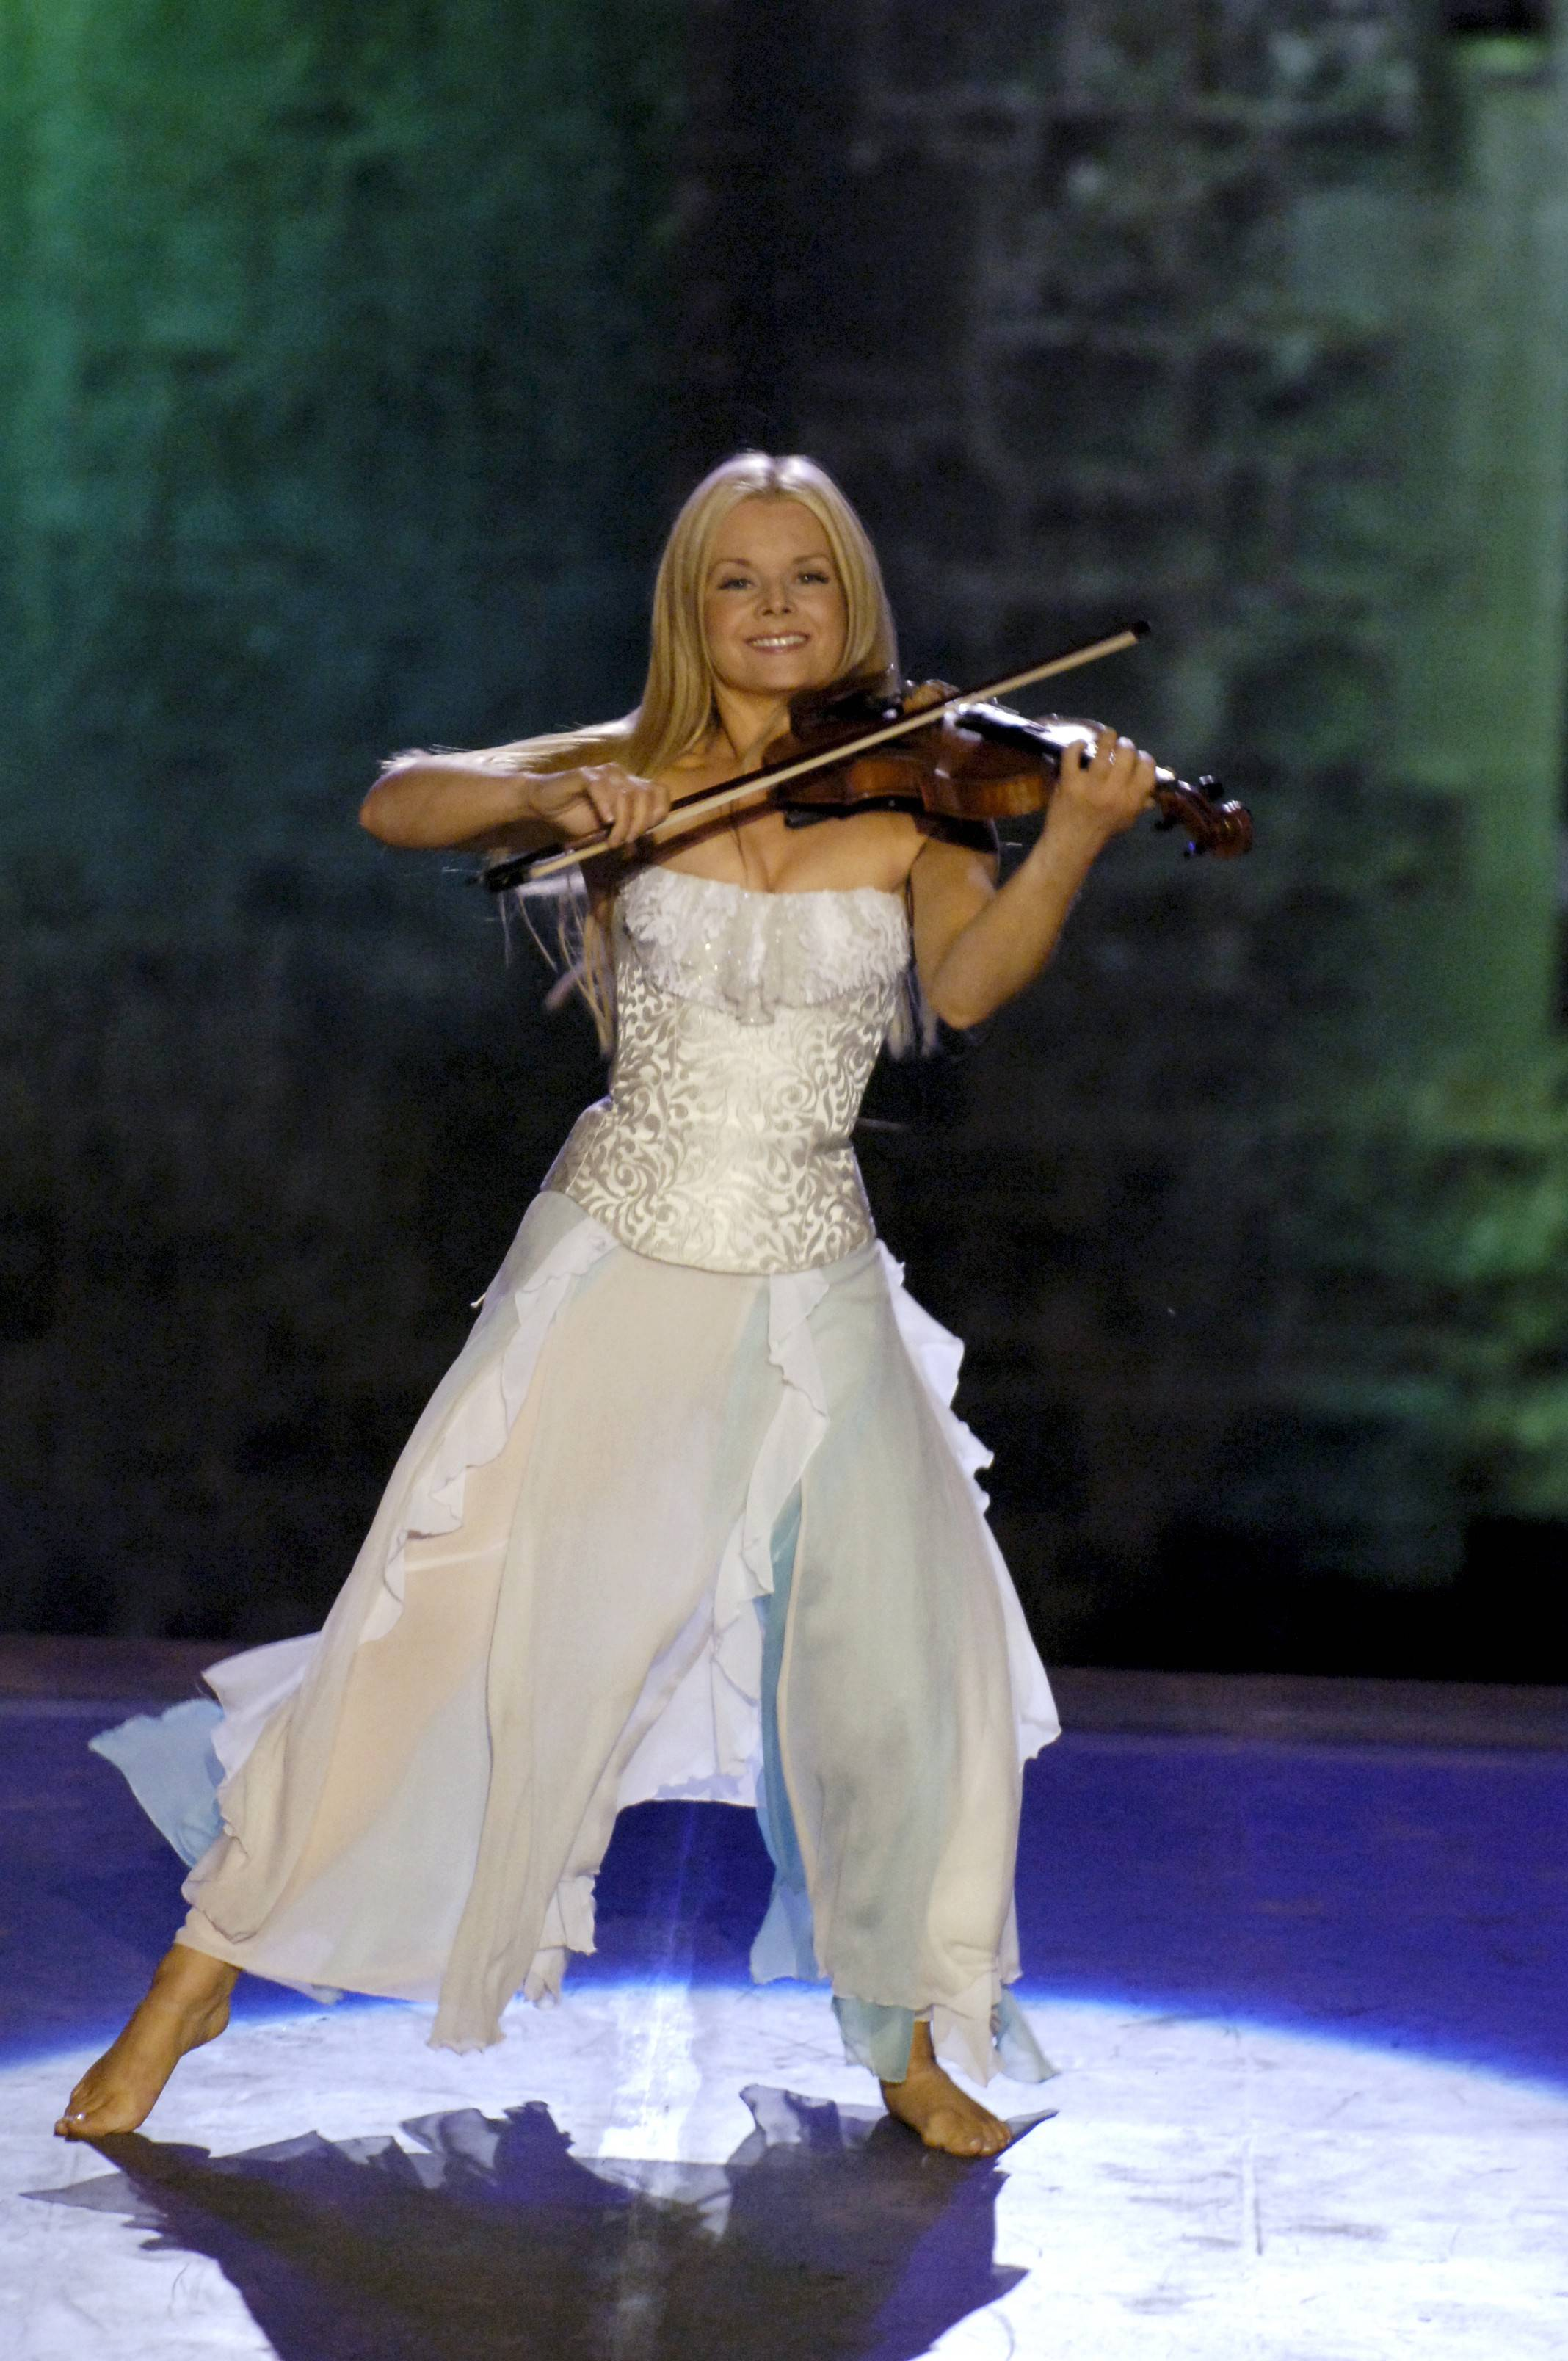 Celtic Woman, with Mairead Nesbitt, performs Sunday at the Chicago Theatre.